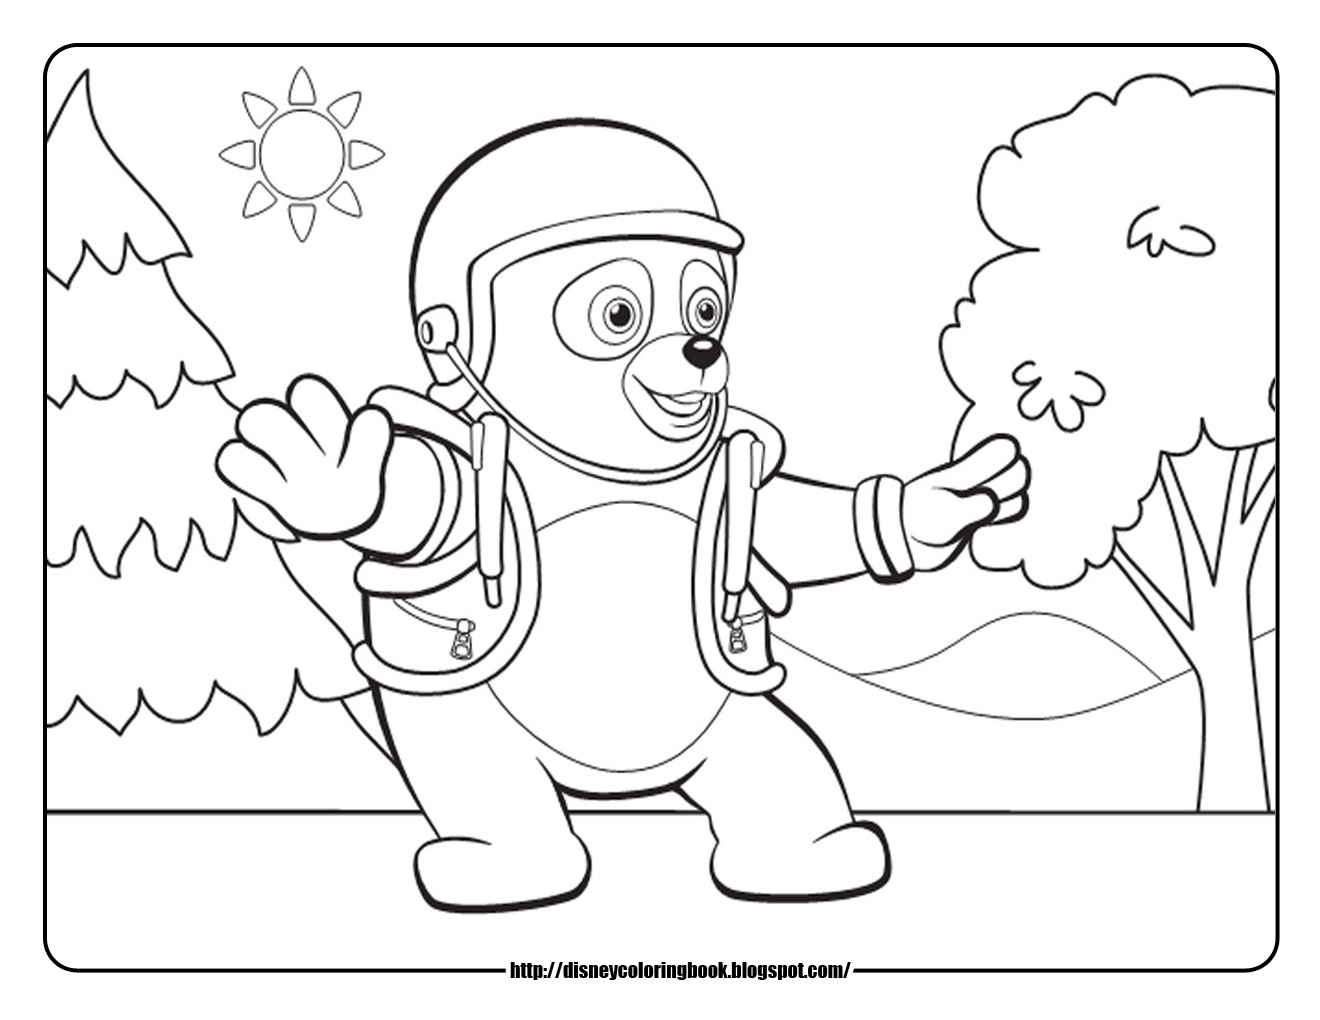 Disney Coloring Pages And Sheets For Special Agent Oso Free